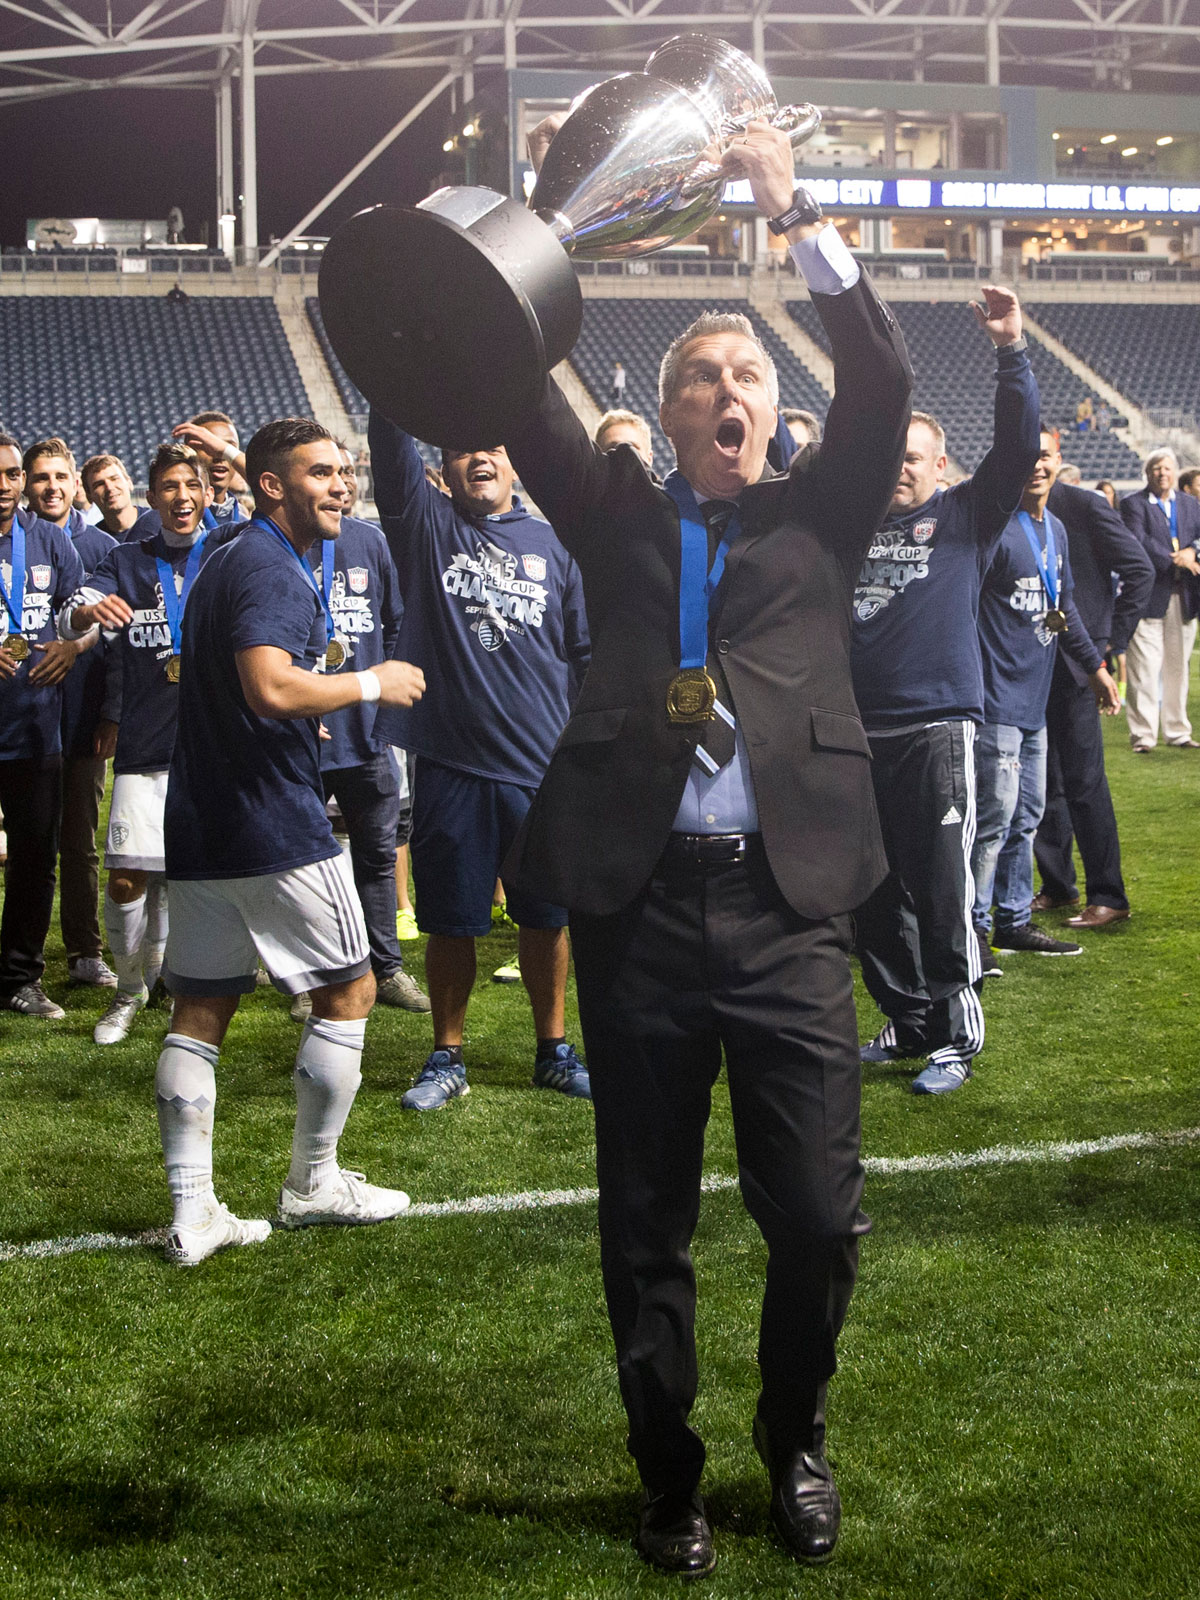 Peter Vermes lifts the 2015 U.S. Open Cup trophy with Sporting Kansas City